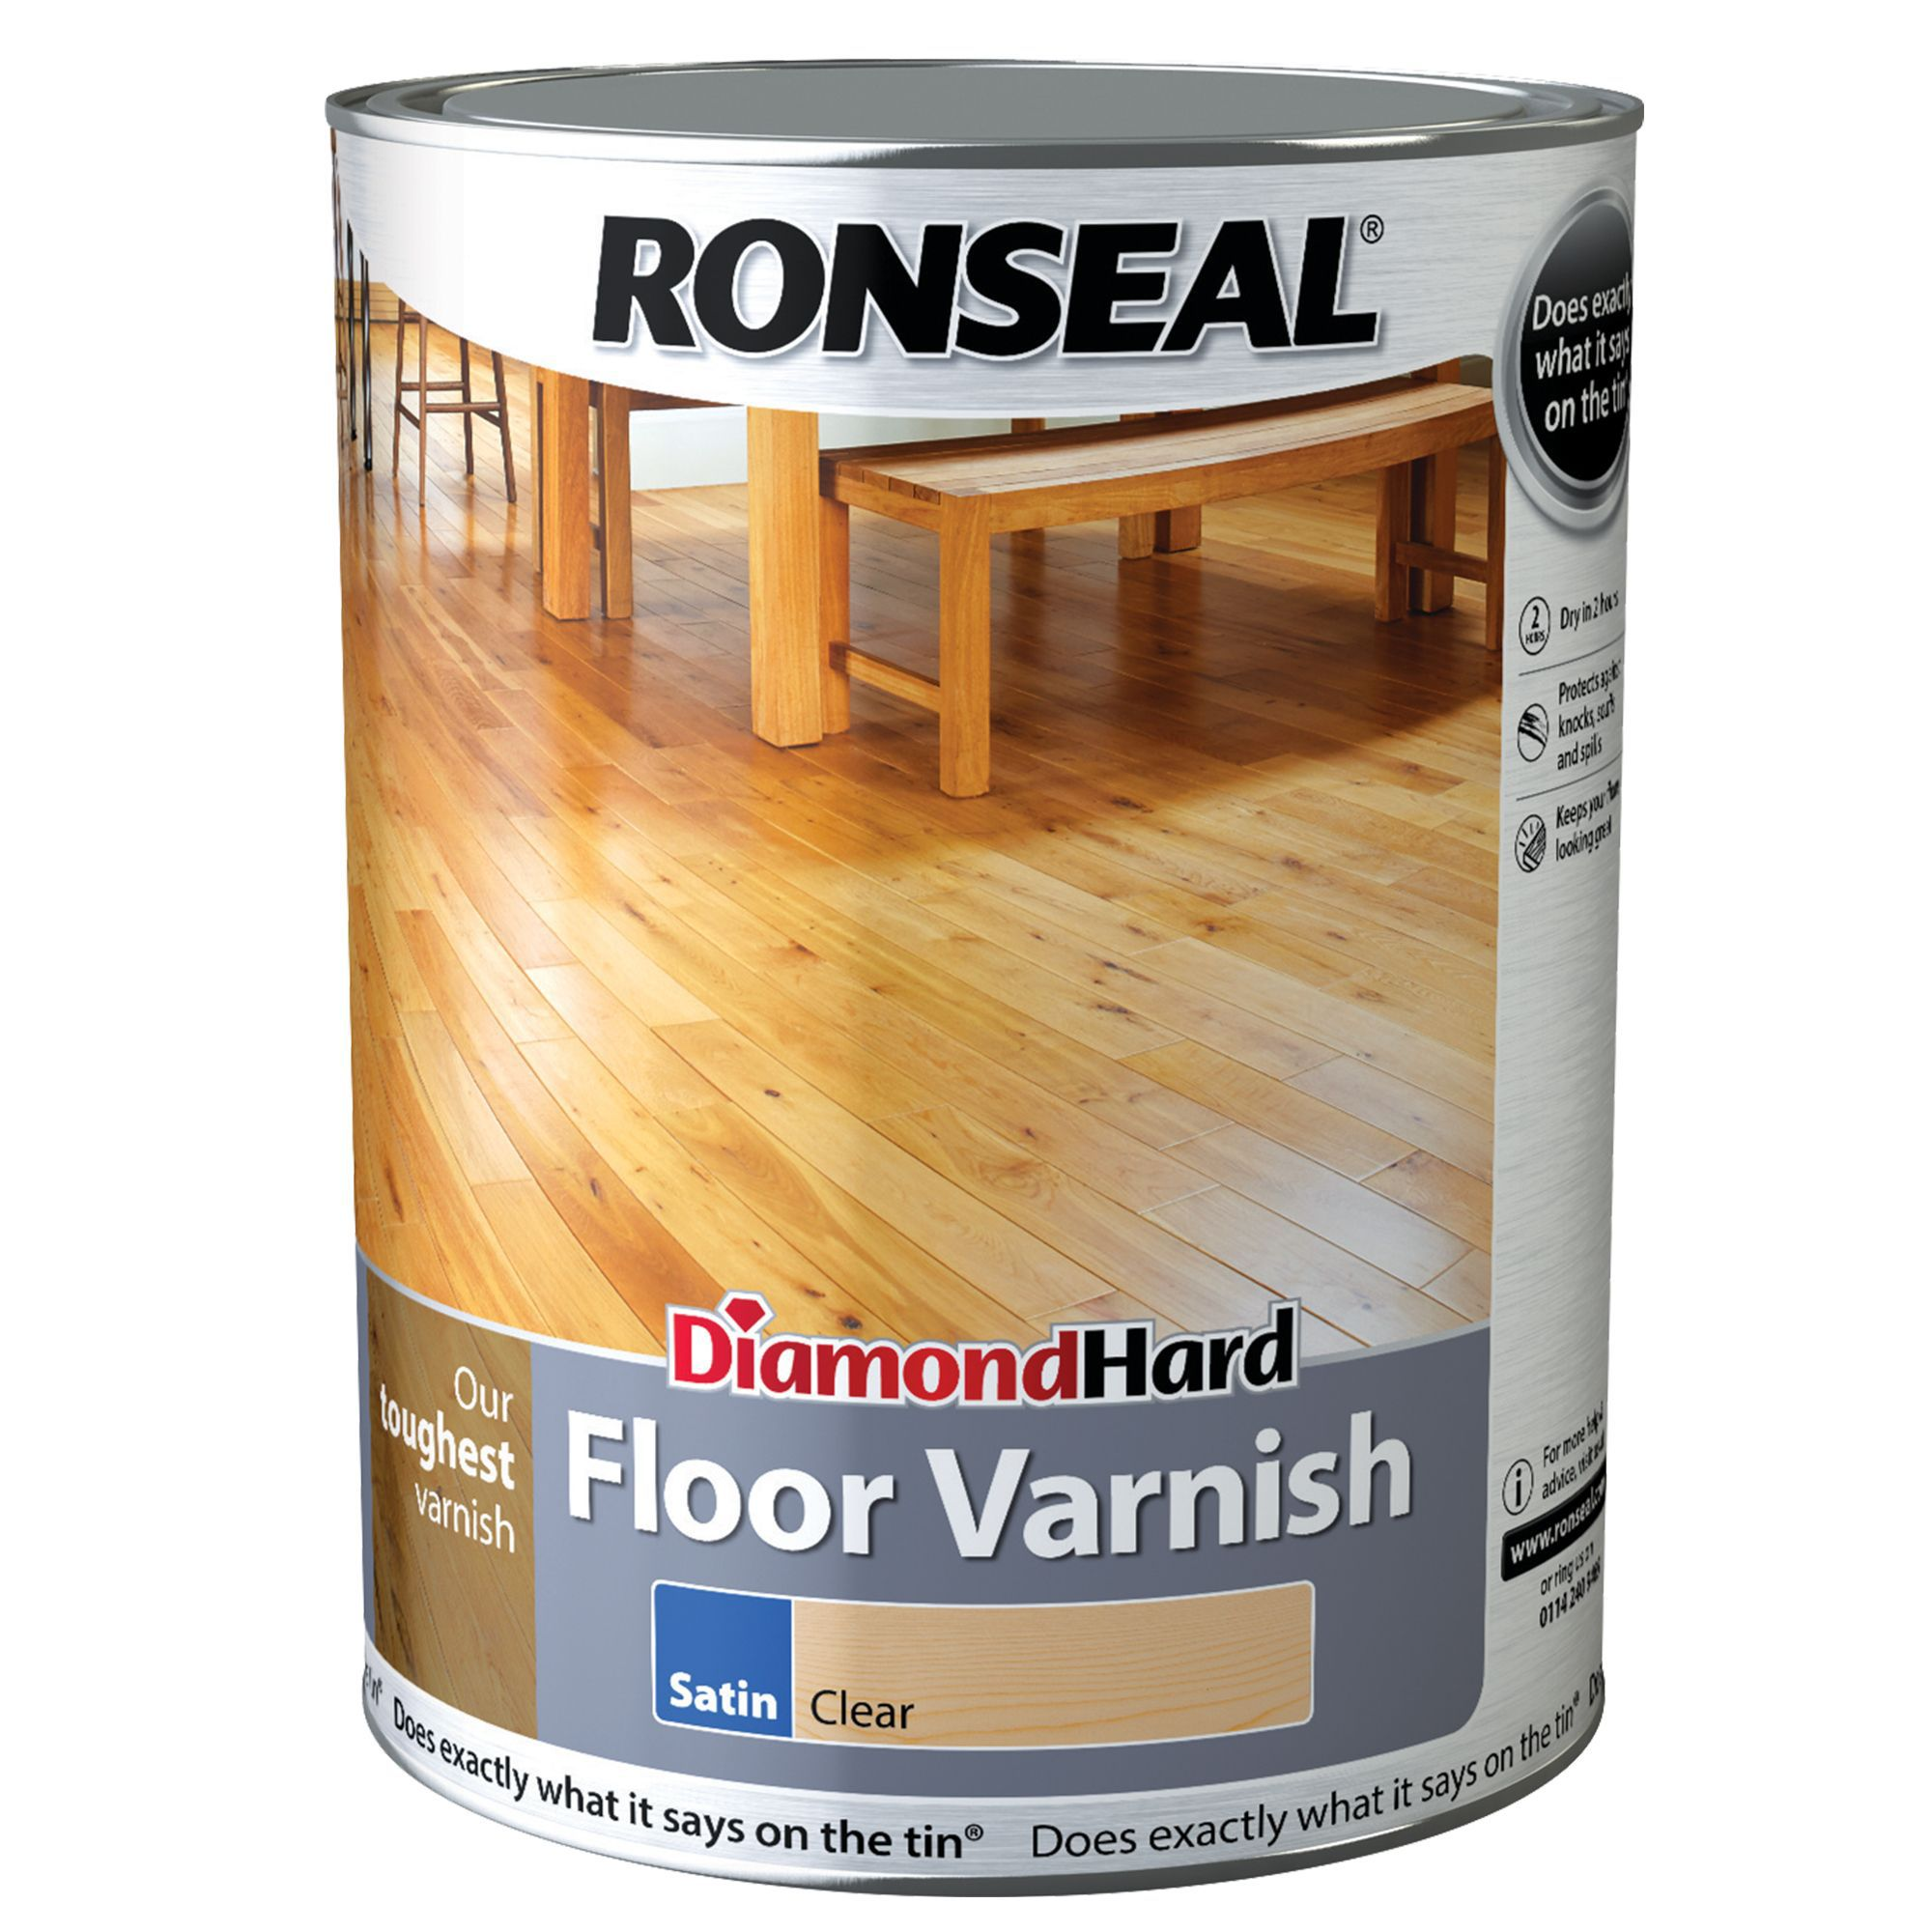 Ronseal Diamond Clear Satin Floor Varnish 5000ml Departments Diy At B Q